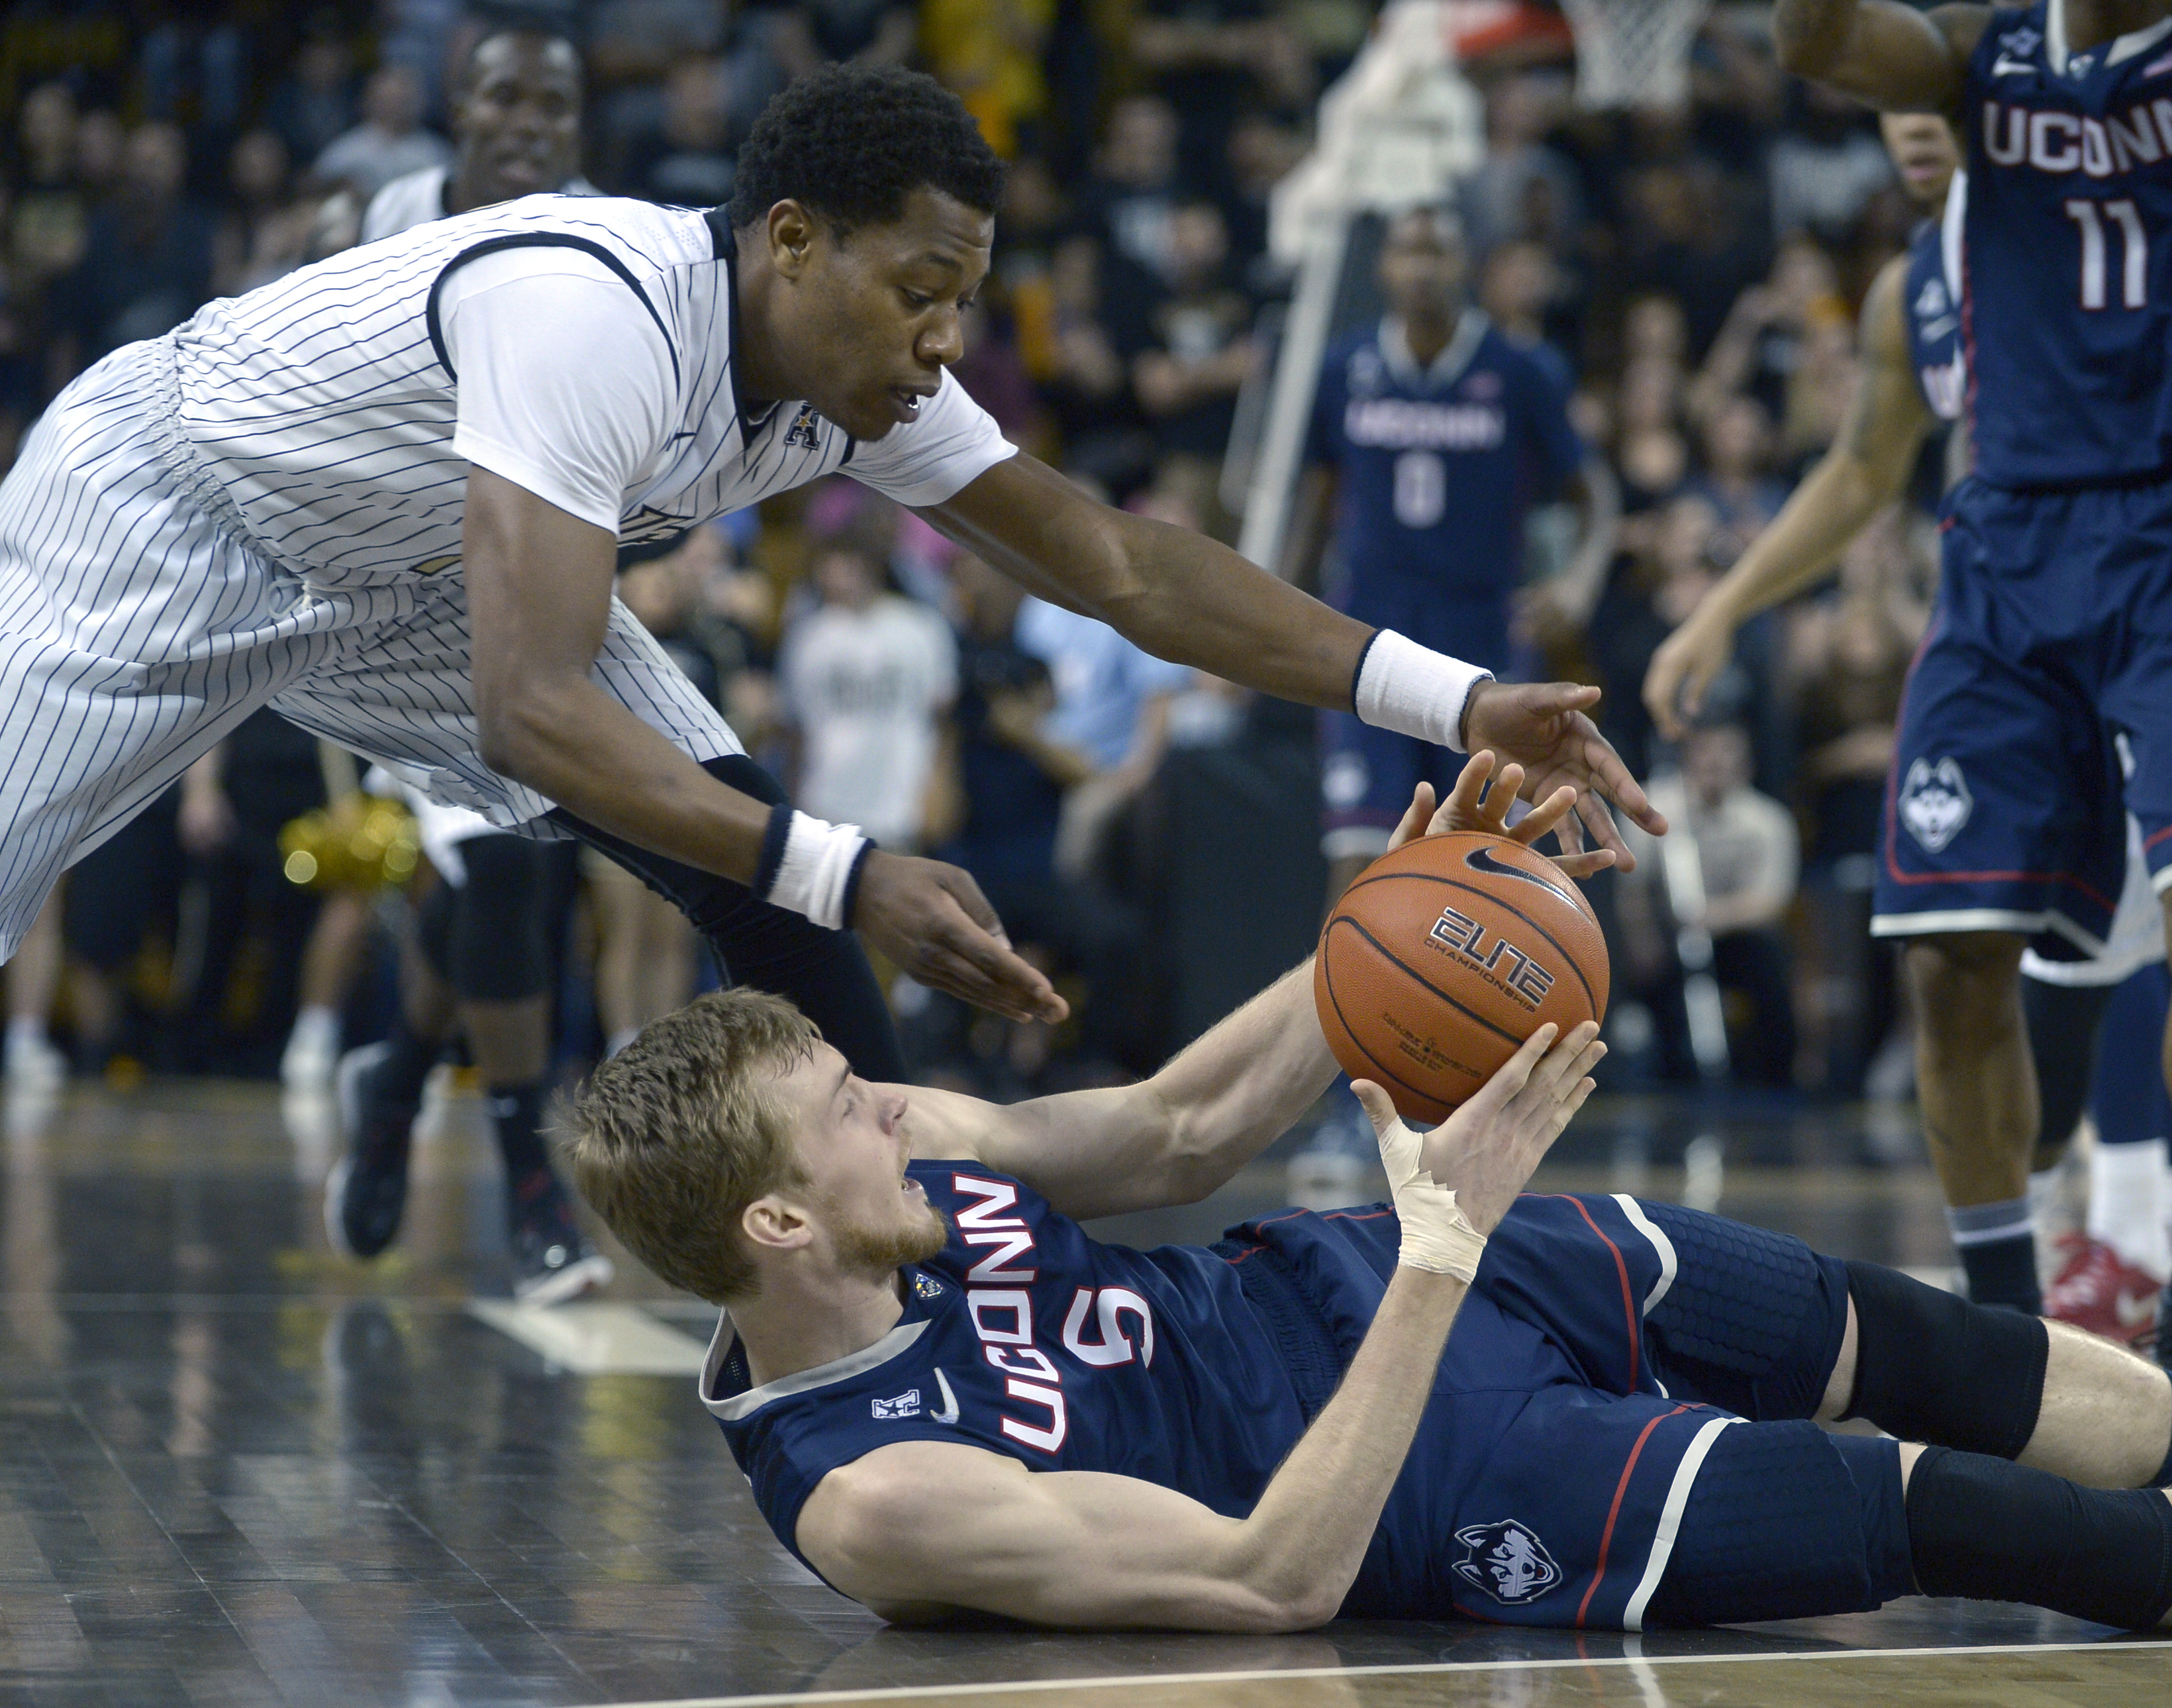 Central Florida guard Matt Williams, left, and Connecticut's Niels Giffey (5) battle for a loose ball during the first half of an NCAA college basketball game in Orlando, Fla., Sunday, Feb. 9, 2014.(AP Photo/Phelan M. Ebenhack)